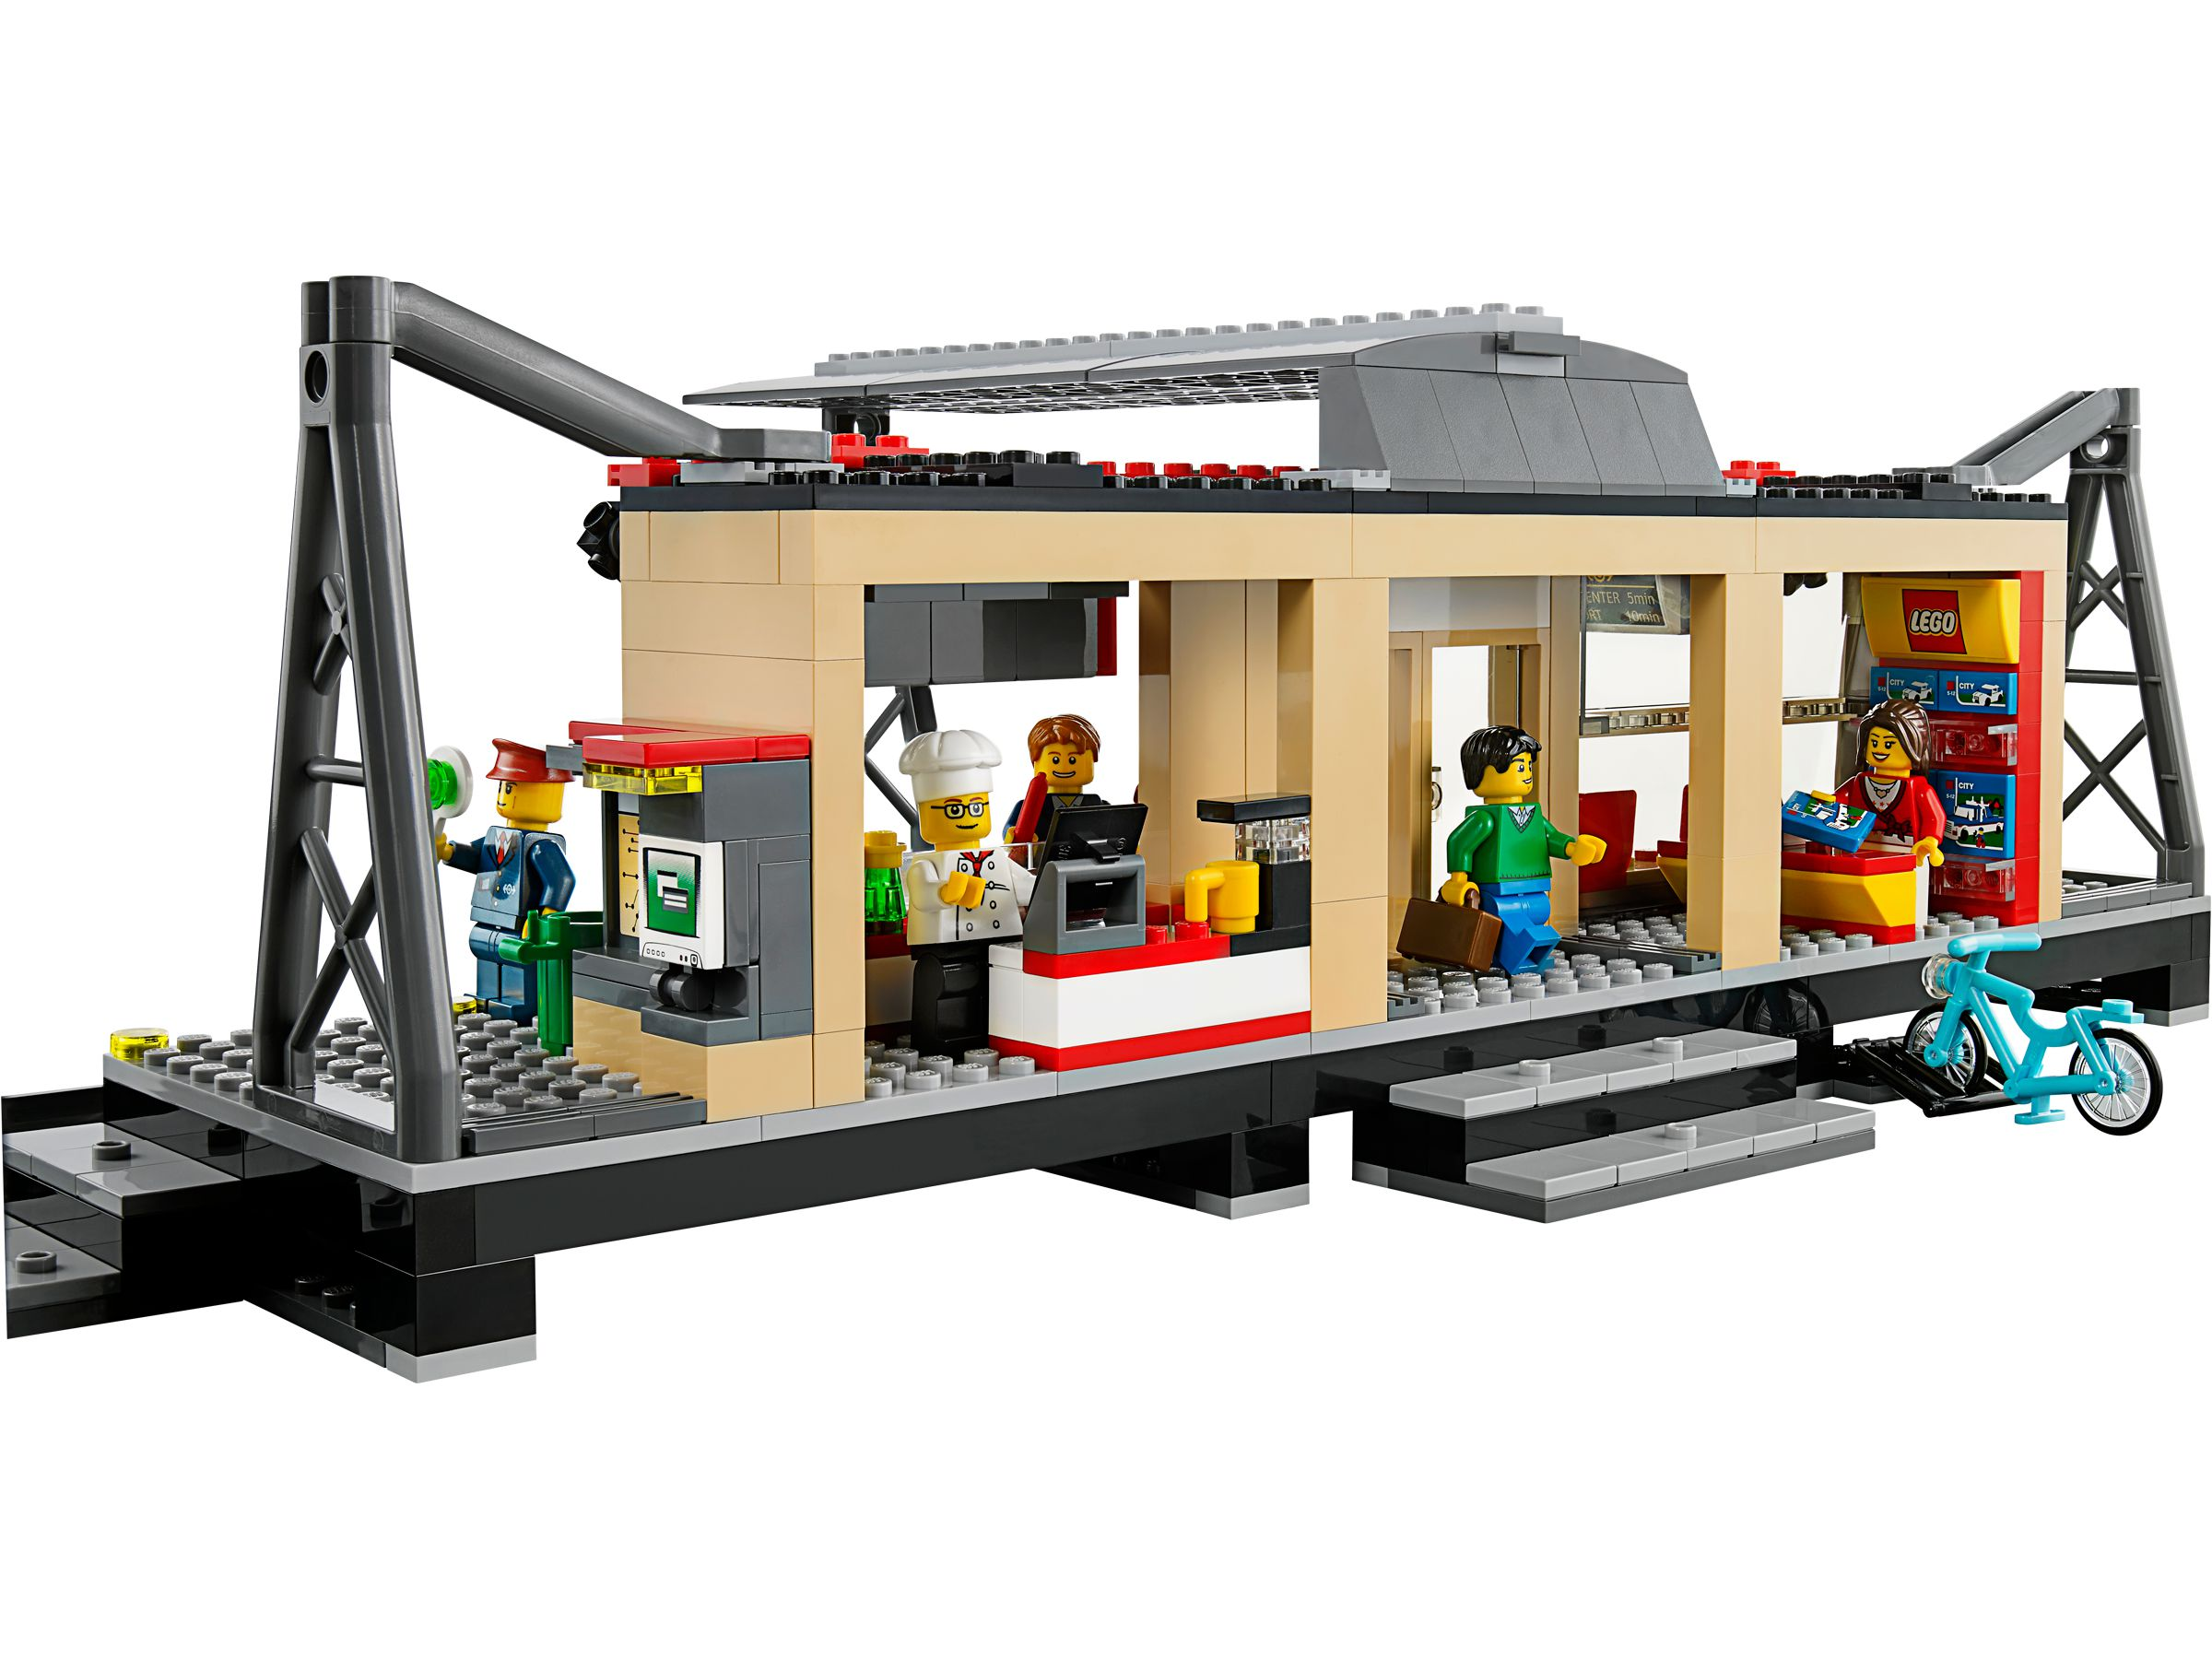 lego 60050 bahnhof city 2014 train station brickmerge. Black Bedroom Furniture Sets. Home Design Ideas